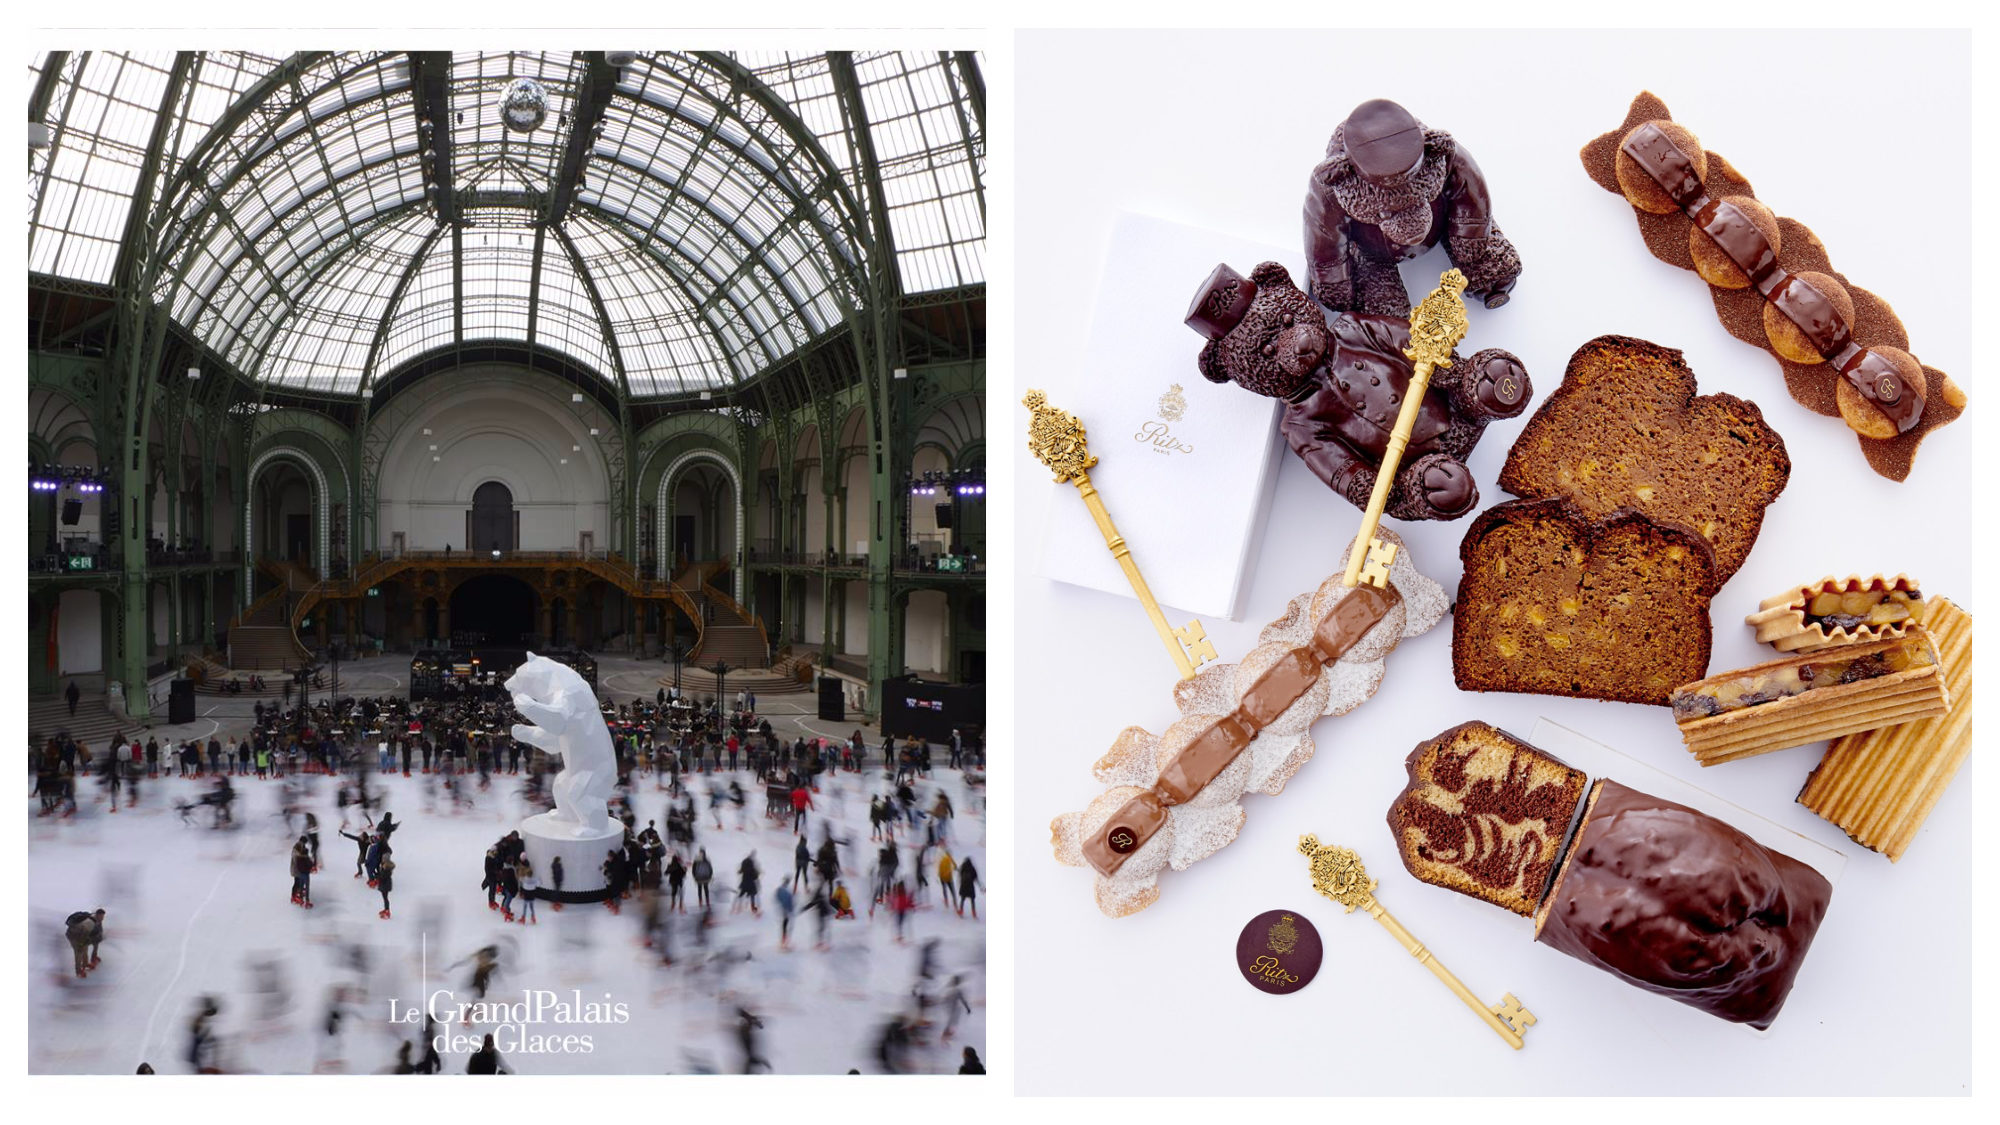 A daylight scene from the Grand Palais ice rink in December in Paris under the glass nave (left). A top-shot of chocolates, cakes, and patisseries for Christmas at the Ritz Hotel (right).